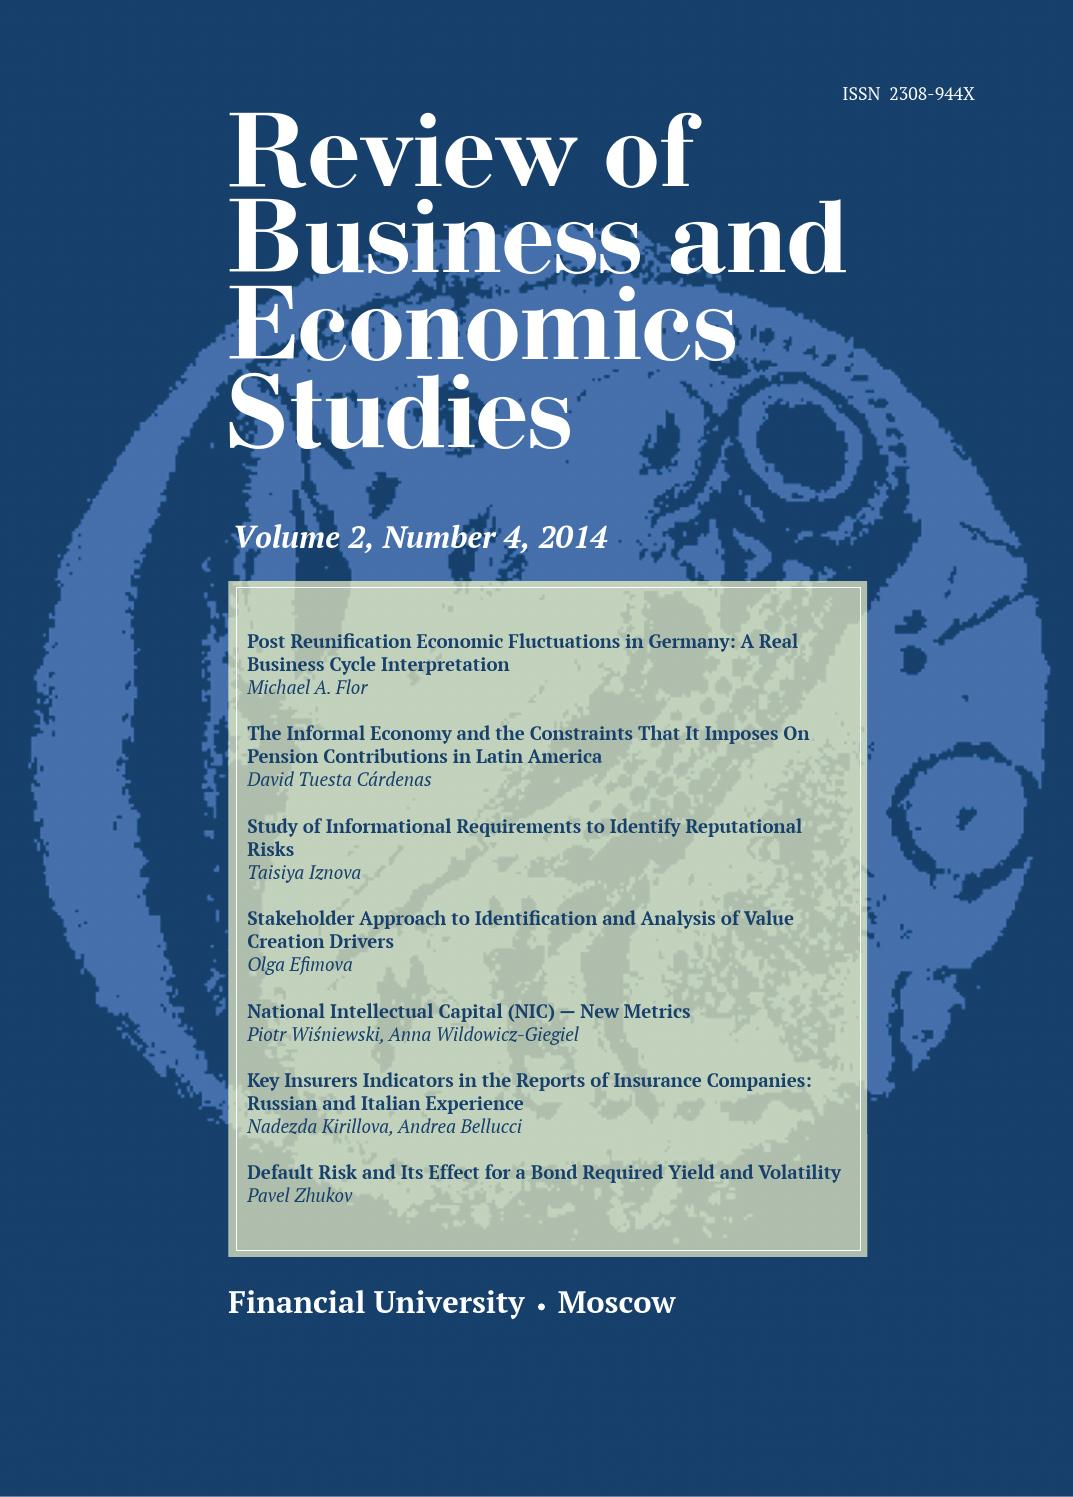 Review of Business and Economics Studies, Vol. 2, Number 4, 2014 by Review  of Business and Economics Studies (ROBES) - issuu